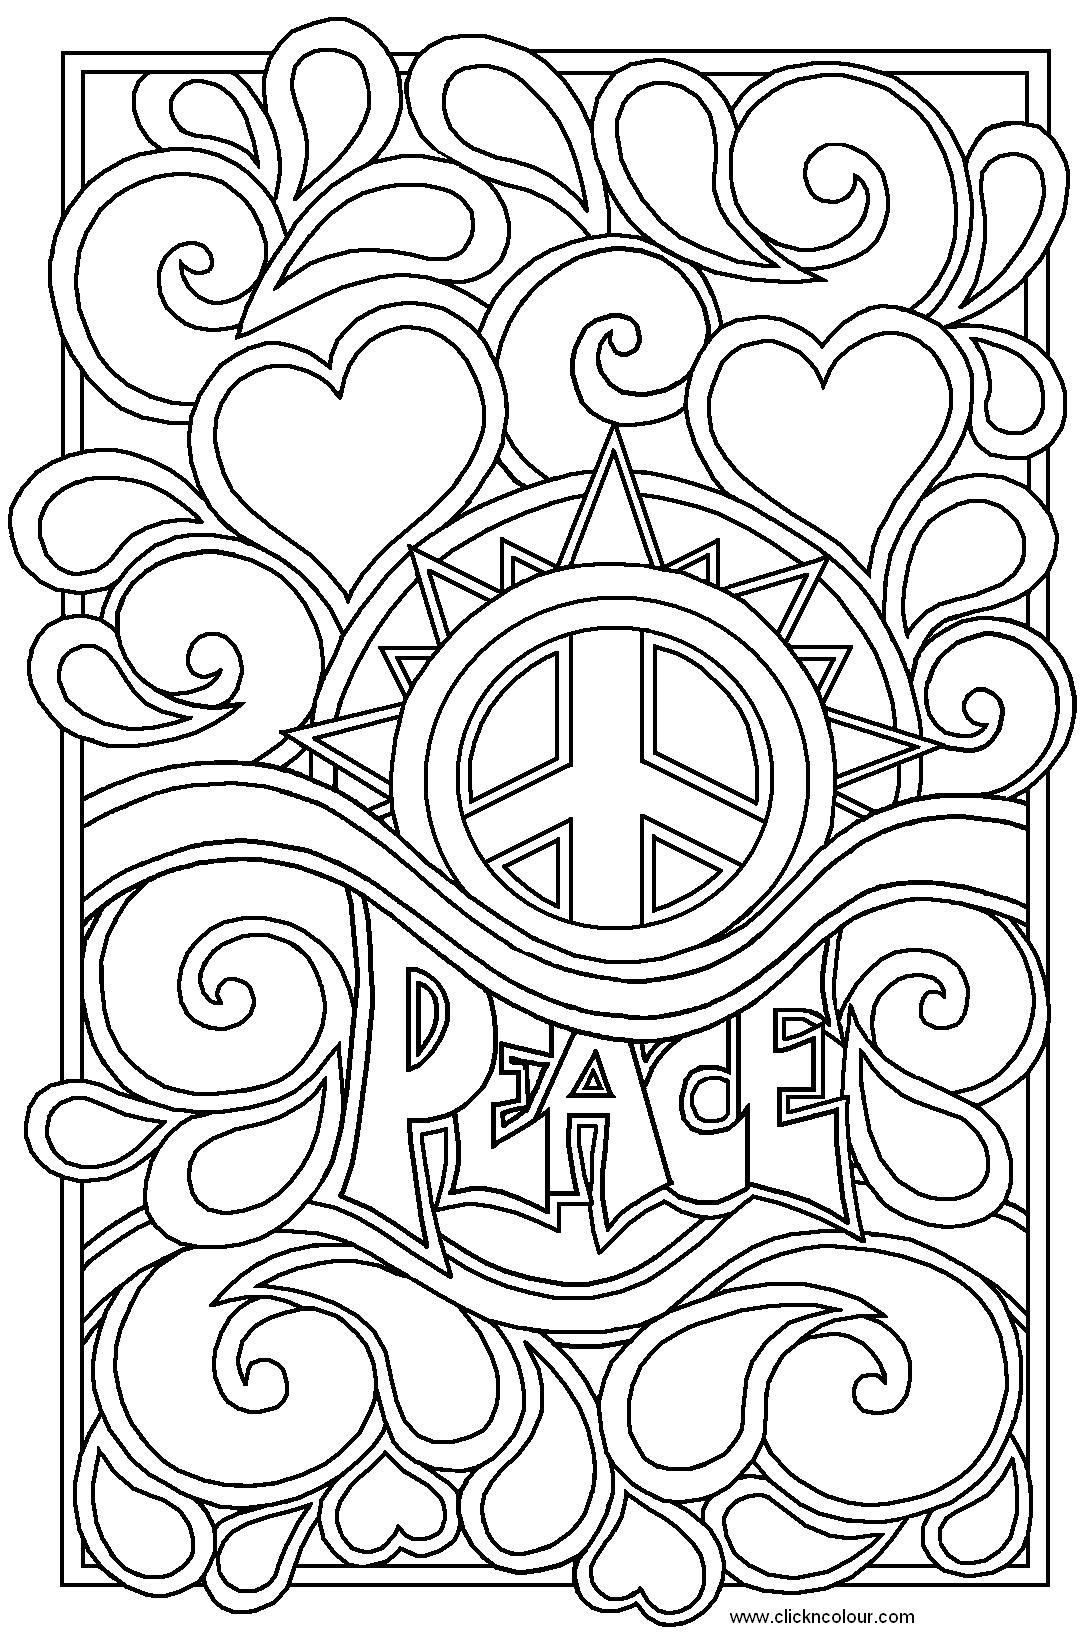 Heart Coloring Pages For Teenagers | peace and love ...